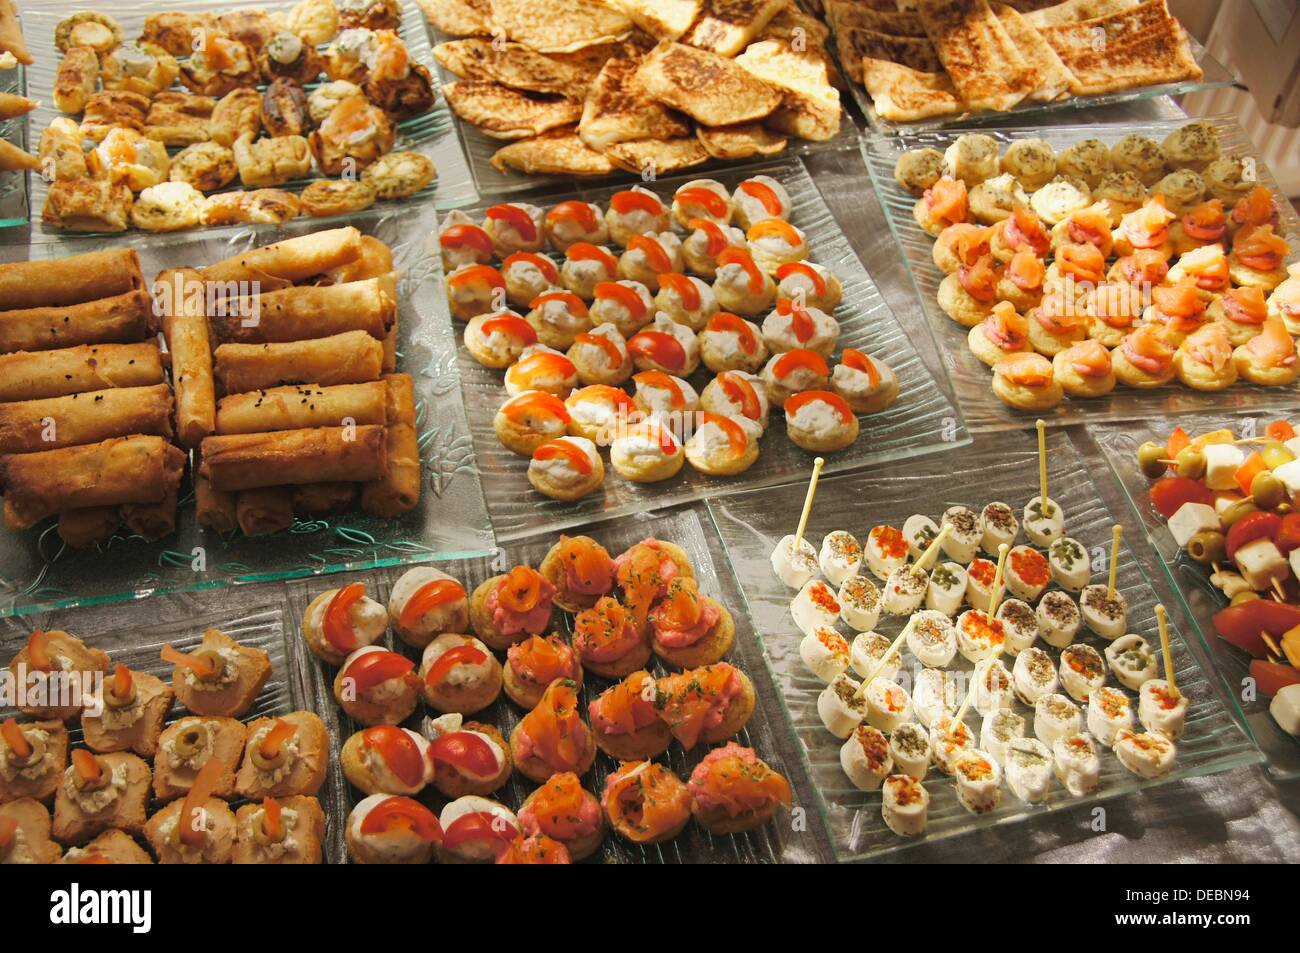 Food appetizers gironde aquitaine france stock photo for Aquitaine cuisine